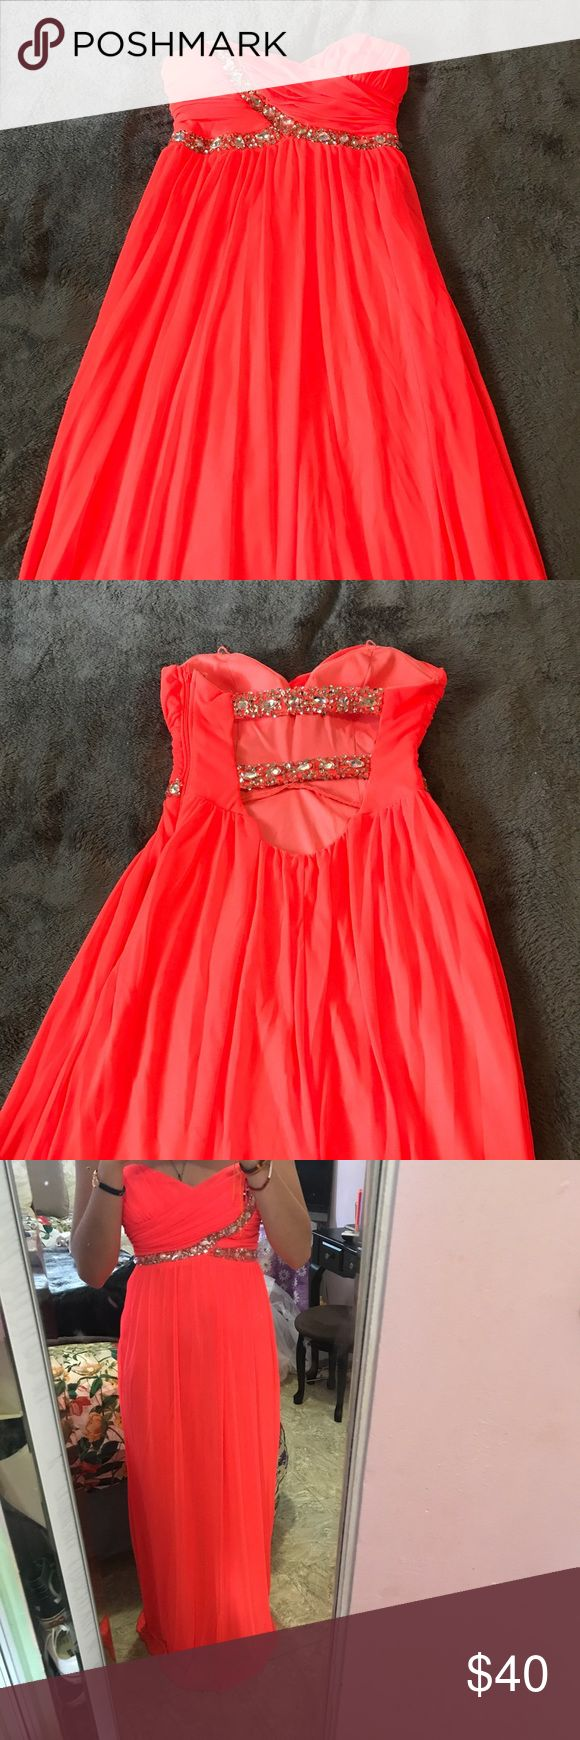 Neon orange prom dress Beautiful neon prom dress only worn once. In almost perfect condition except for the bottom that shows signs of wear (not noticeable at all when on). City Studio Dresses Prom